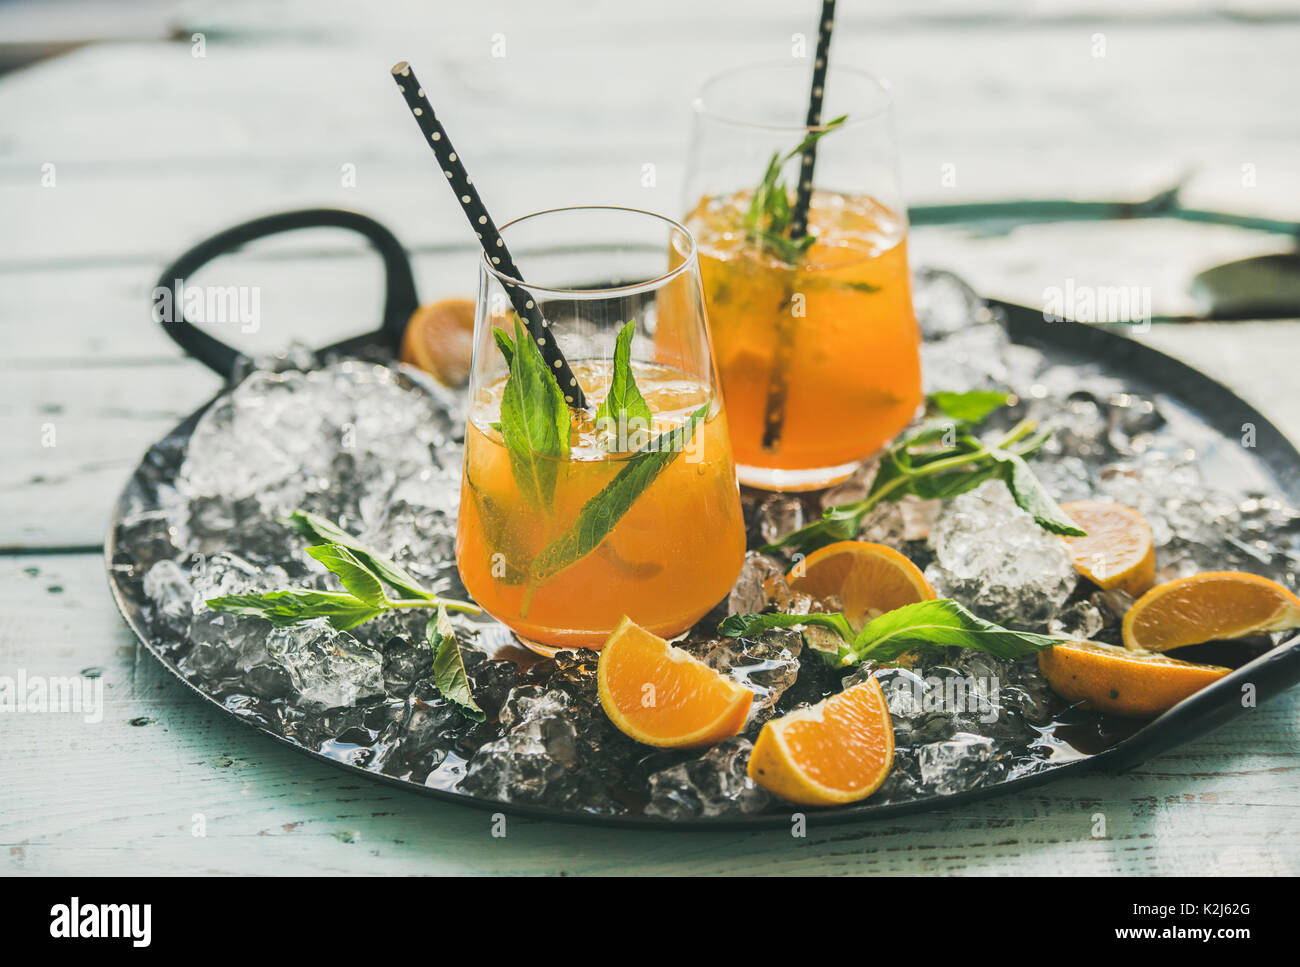 Refreshing cold alcoholic summer citrus cocktail with orange, peppermint and ice in stemless glasses on tray over light blue wooden table background,  - Stock Image